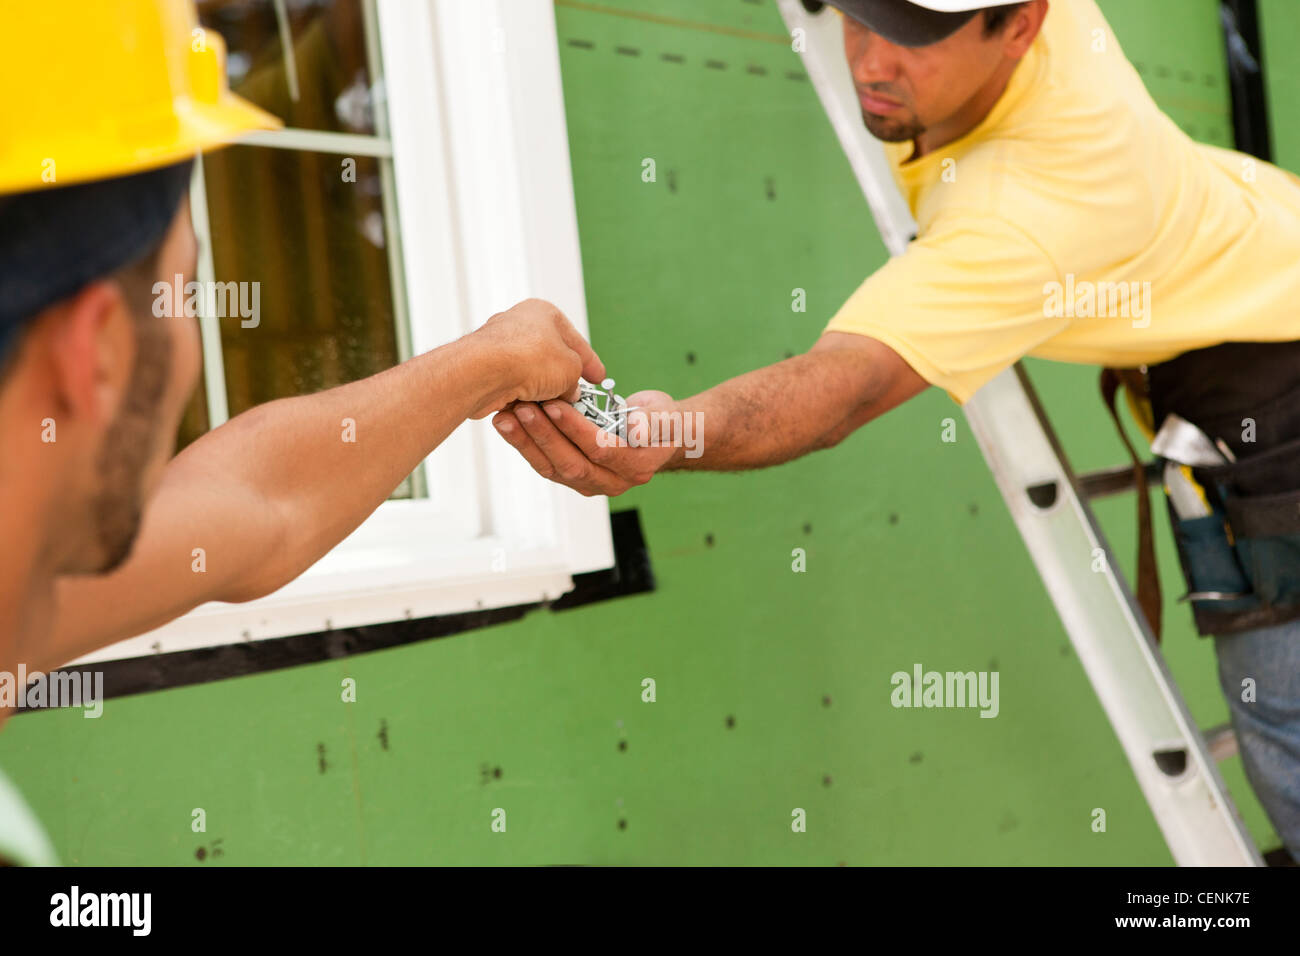 Hispanic carpenter handing nails to another carpenter for window installation - Stock Image